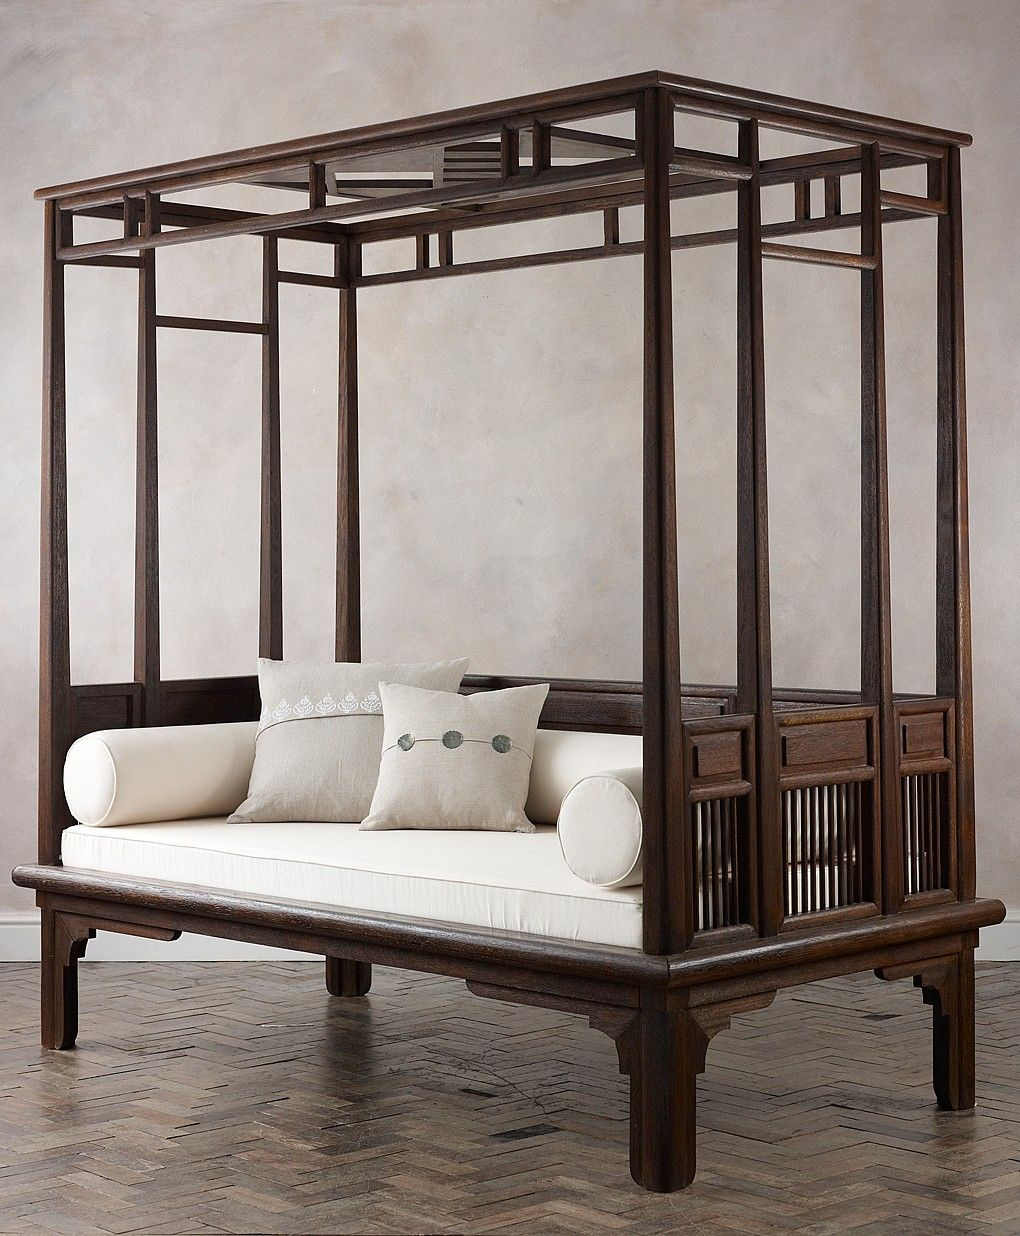 Orchid Four Poster Daybed Furniture, Wooden daybed